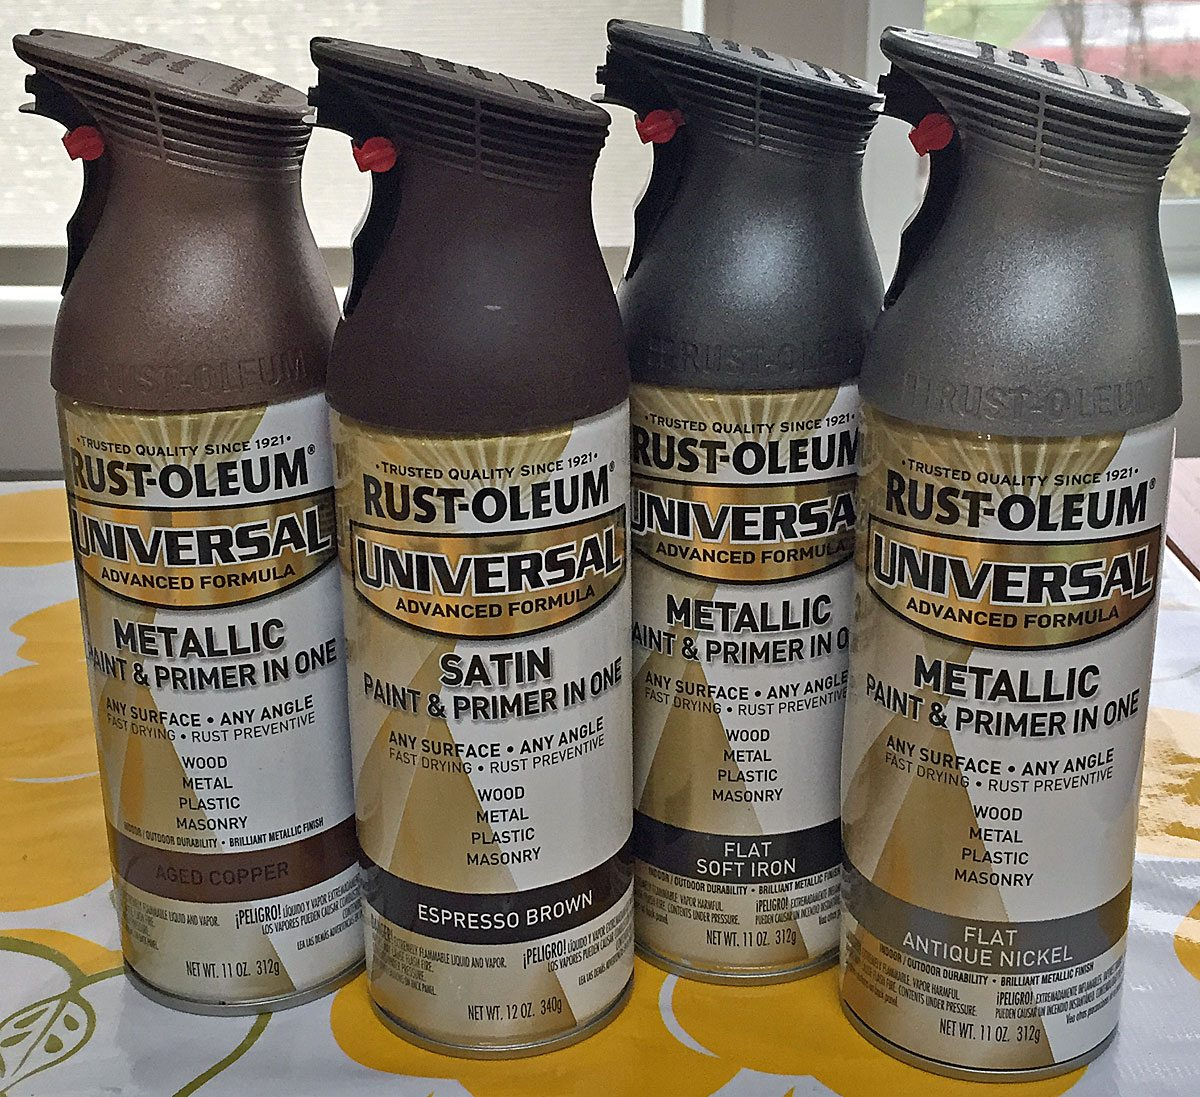 Metallic paints. Photo by Will James.